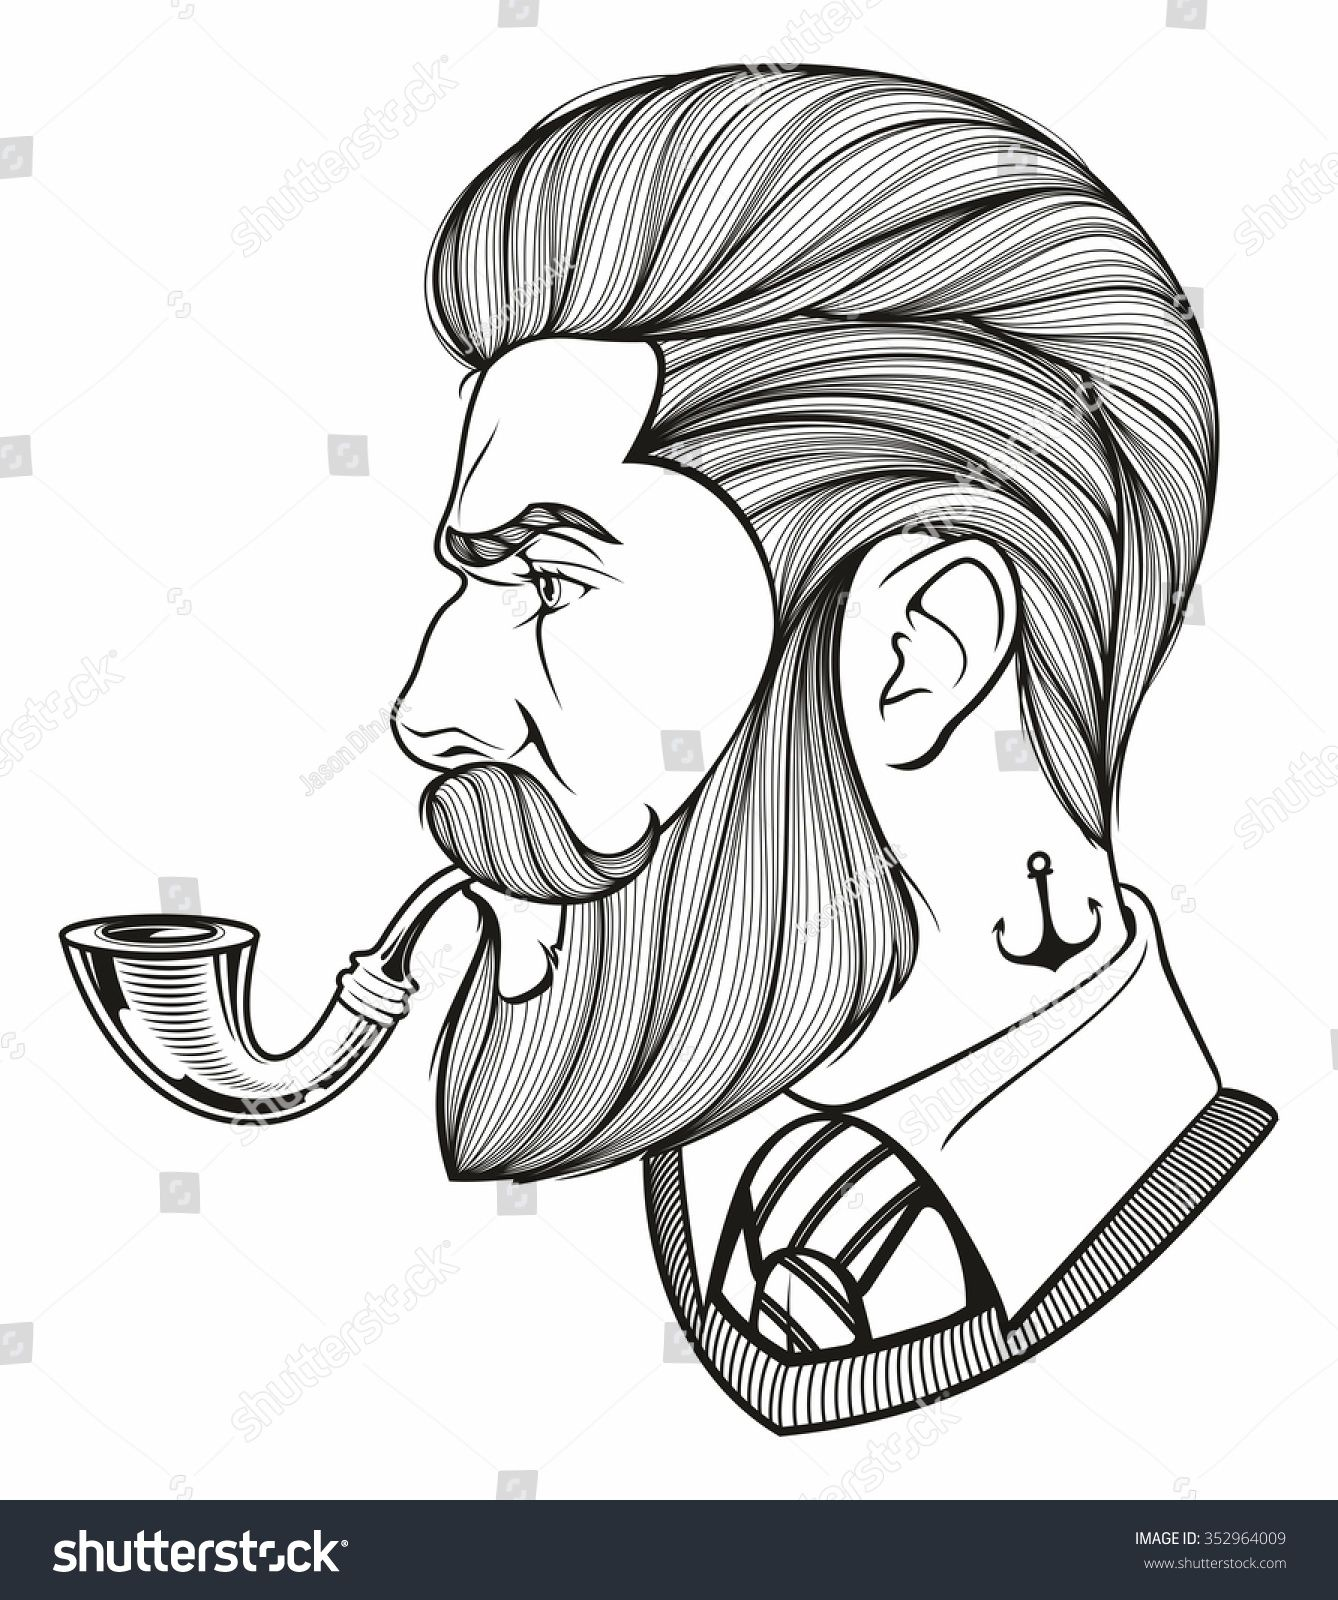 Hand drawn portrait of bearded man with pipe side view